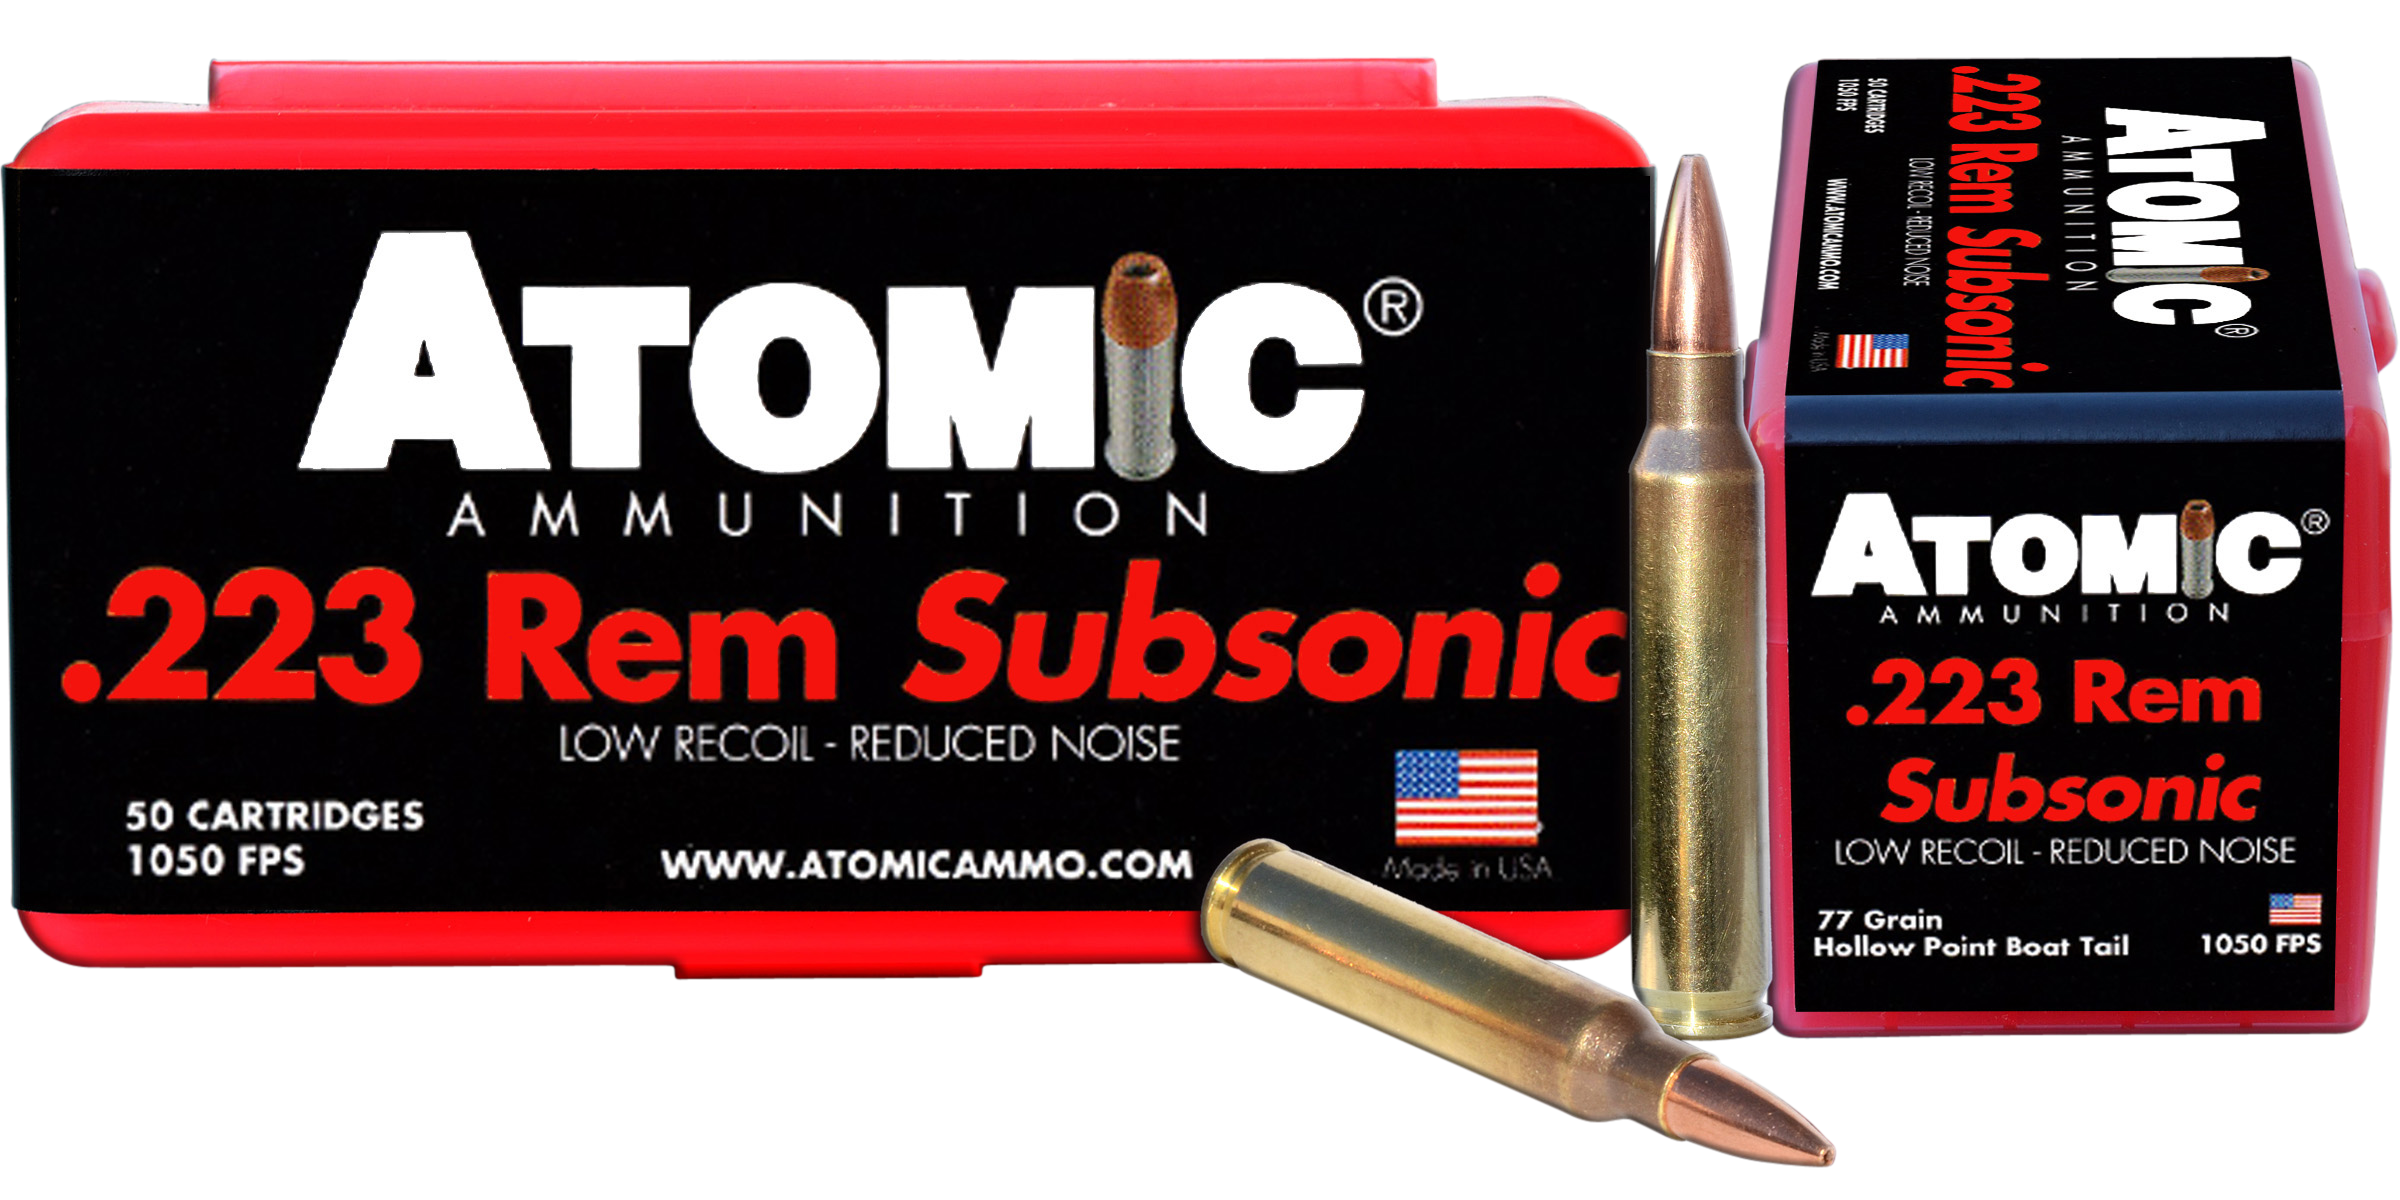 Atomic Subsonic Ammunition 223 Remington 77GR Hollow Point Boat Tail Per 50